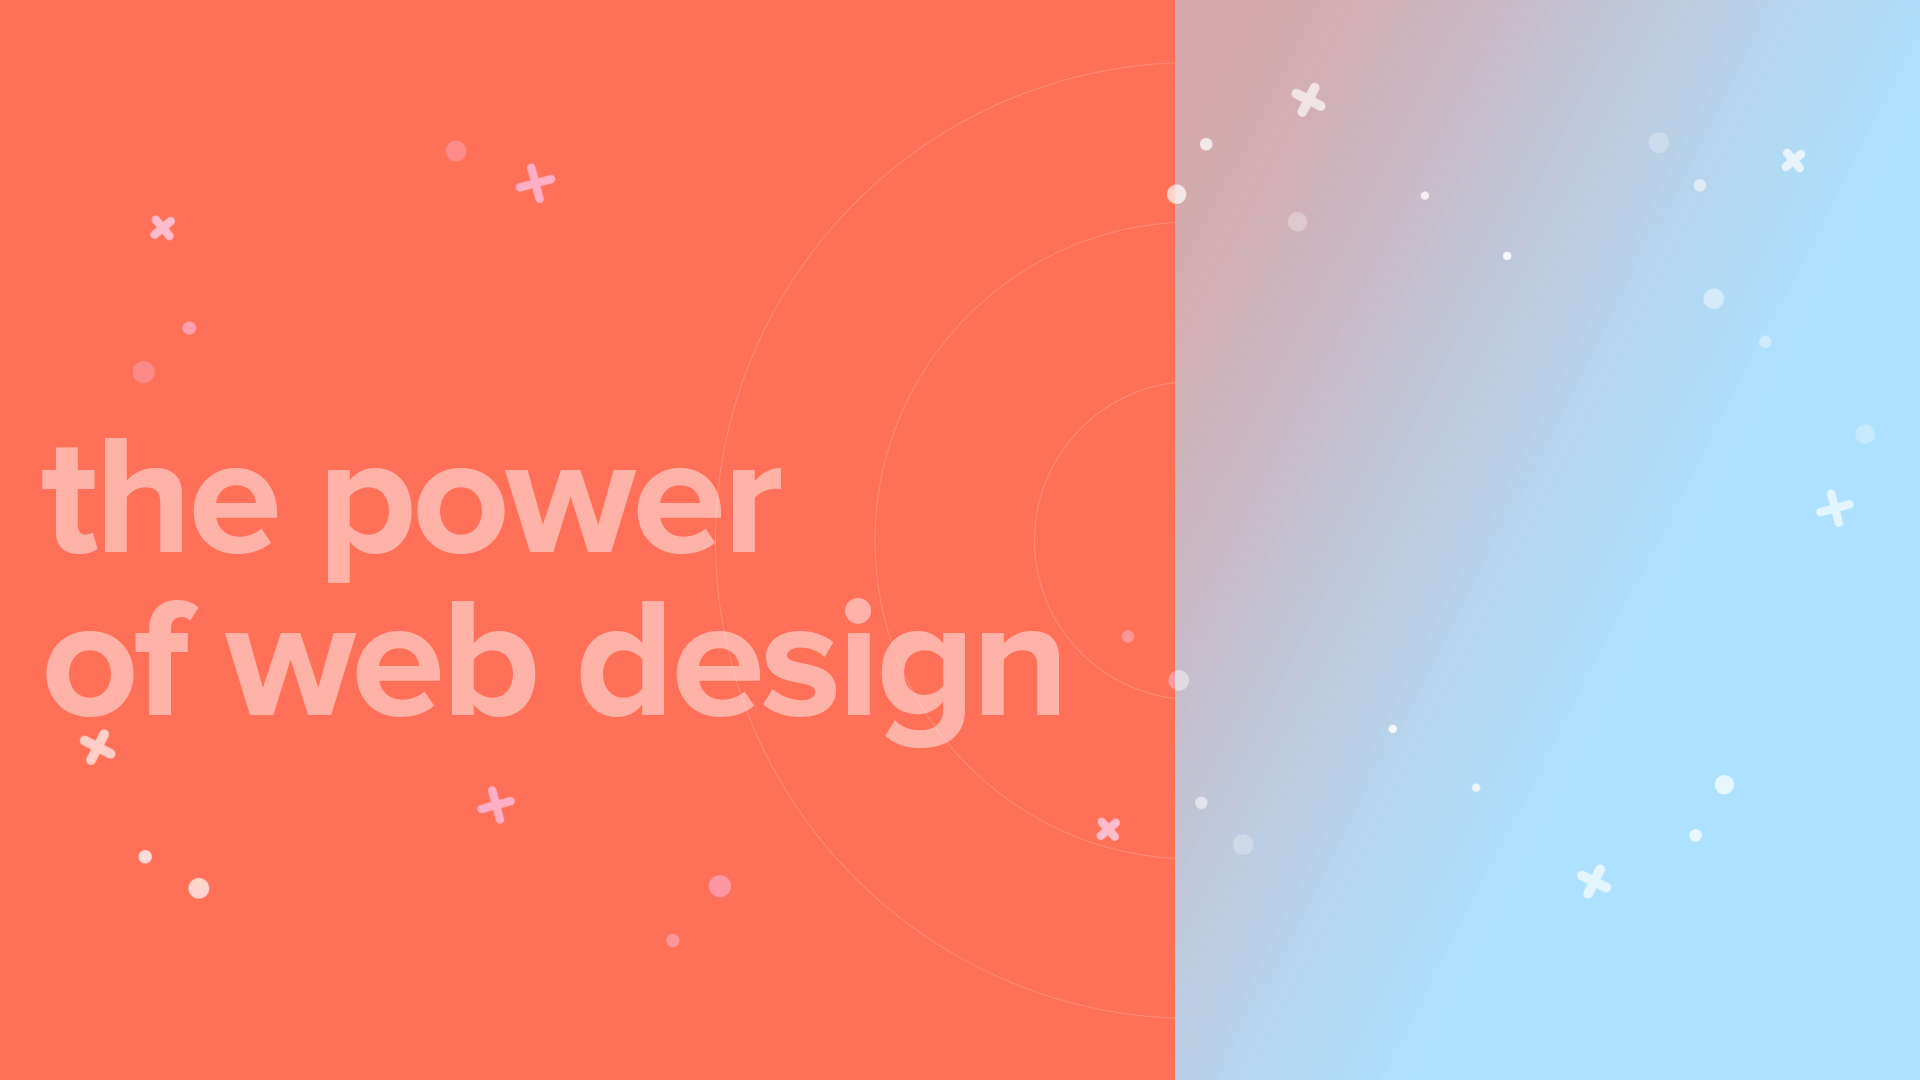 Don't underestimate the power of web design